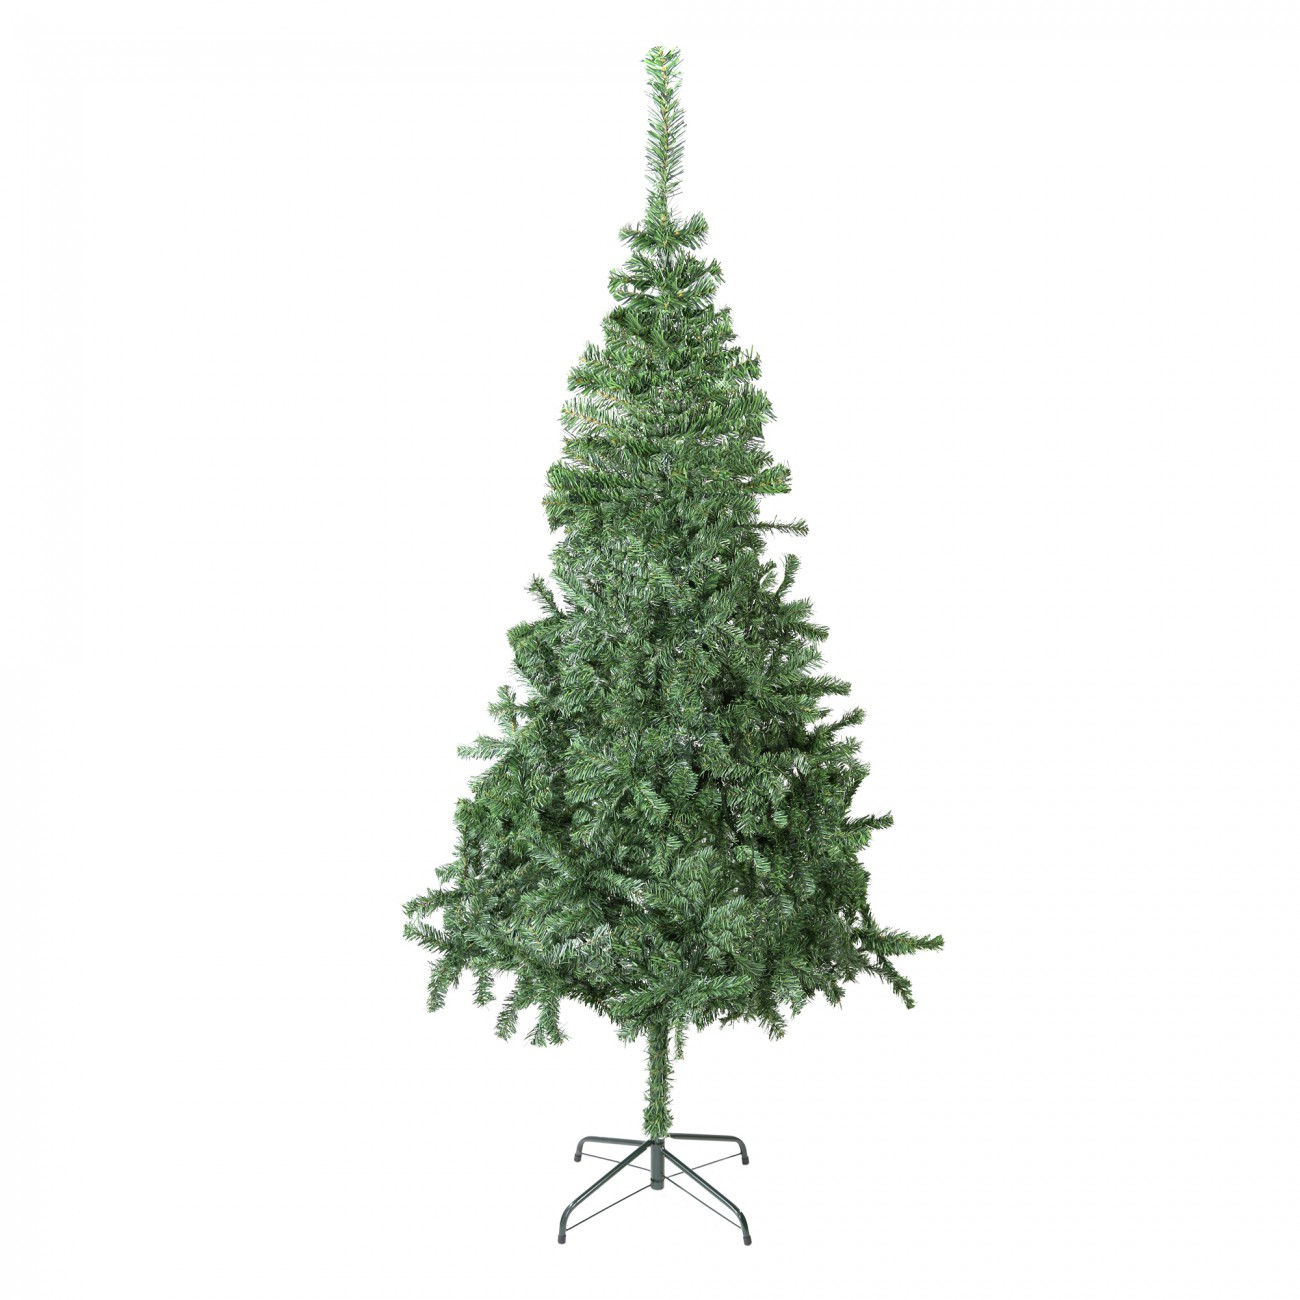 arbre de noel sapin de noel artificiel arbre de d coration sapin plastique moula ebay. Black Bedroom Furniture Sets. Home Design Ideas